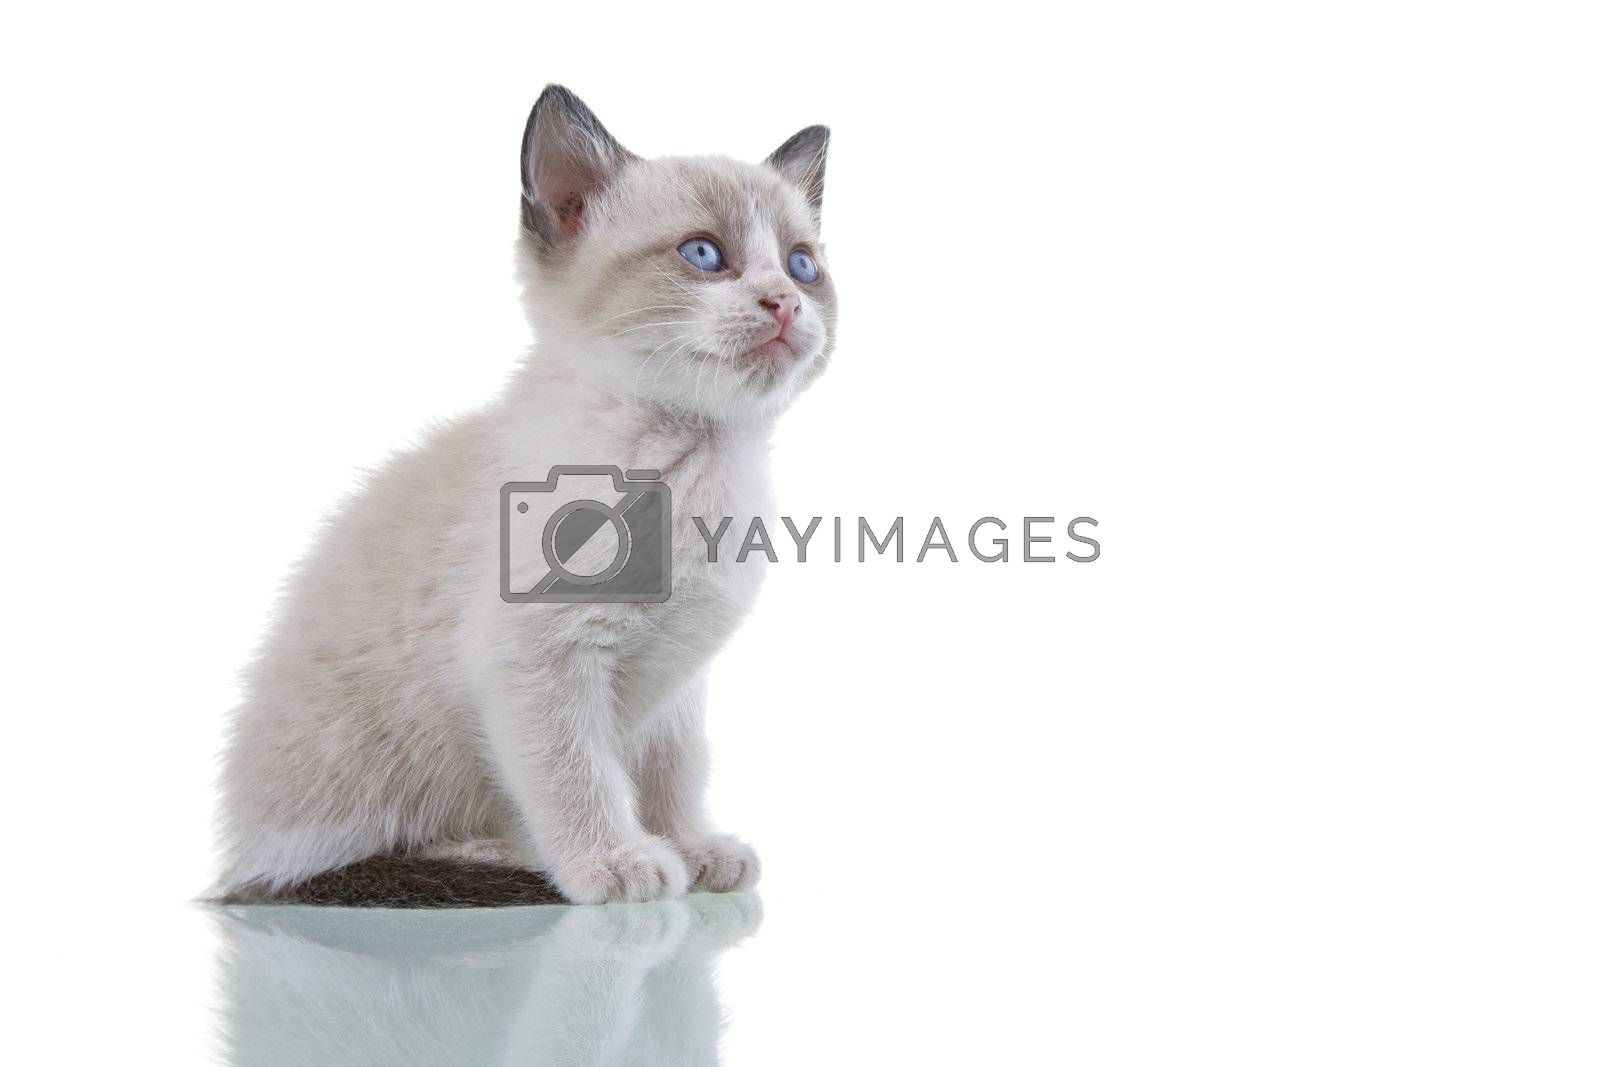 Adorable baby kitten sitting isolated on white background.